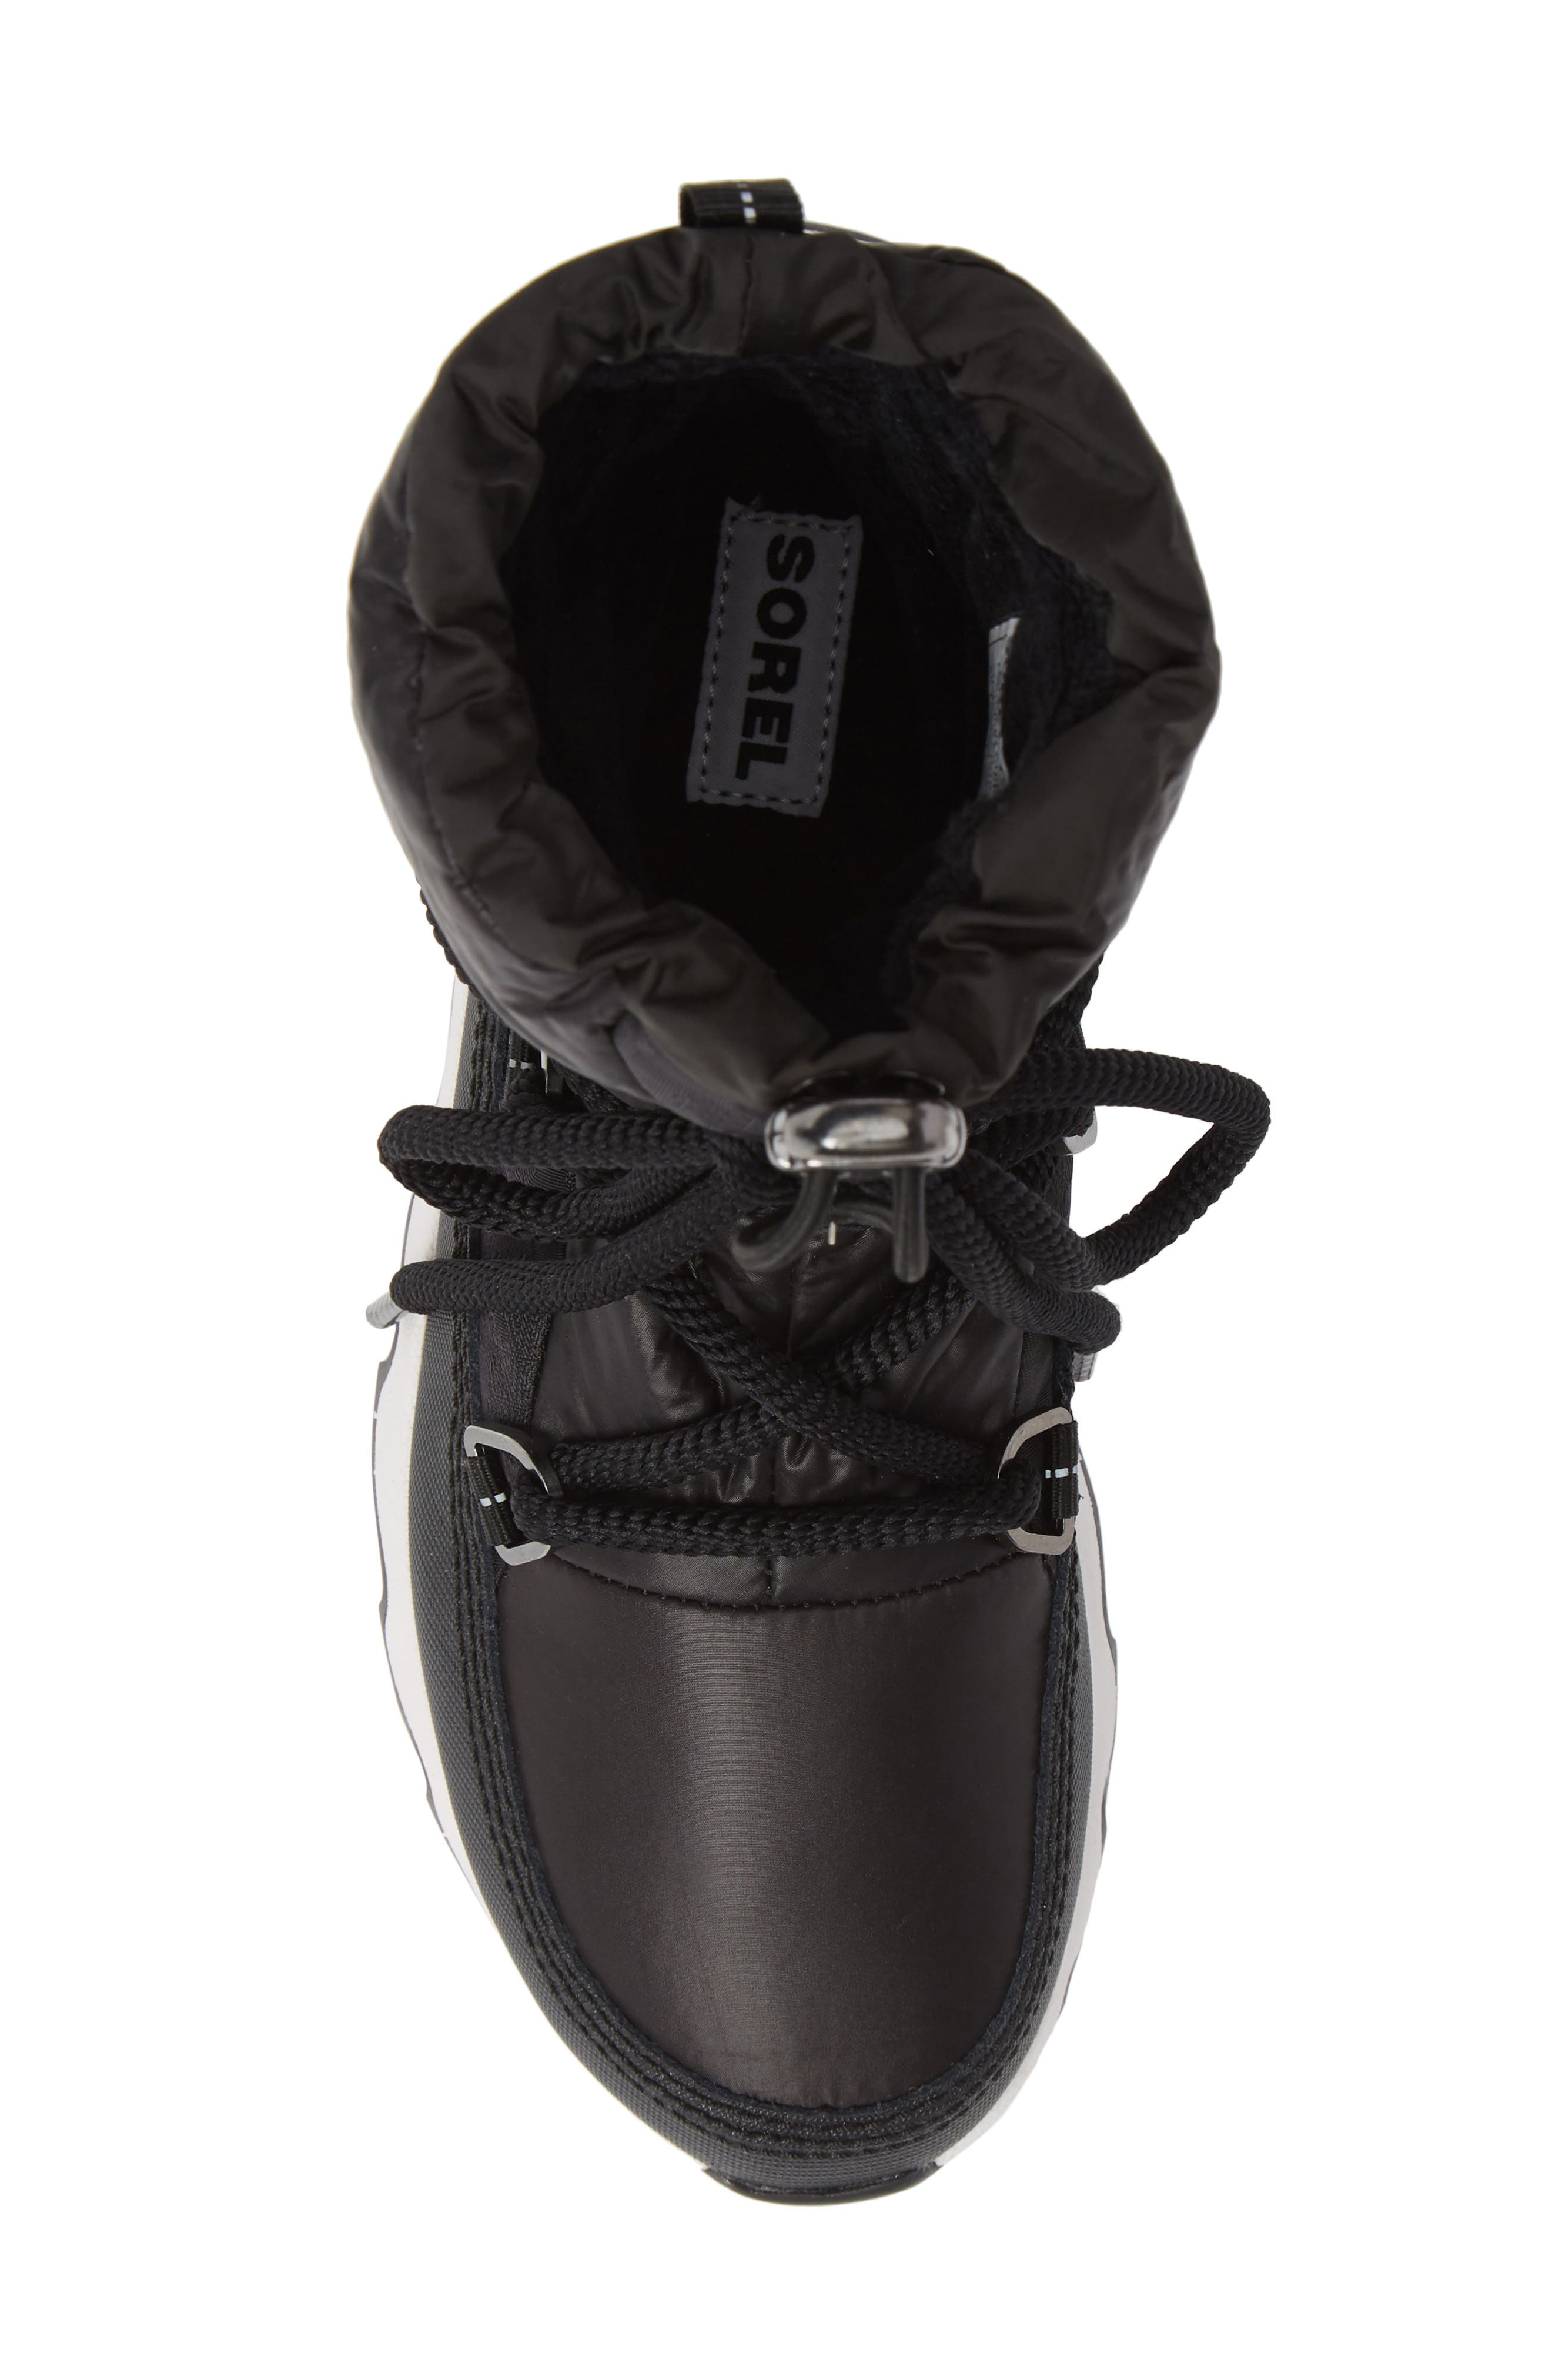 Kinetic Waterproof Insulated Winter Boot,                             Alternate thumbnail 5, color,                             CAMO/ BLACK/ WHITE